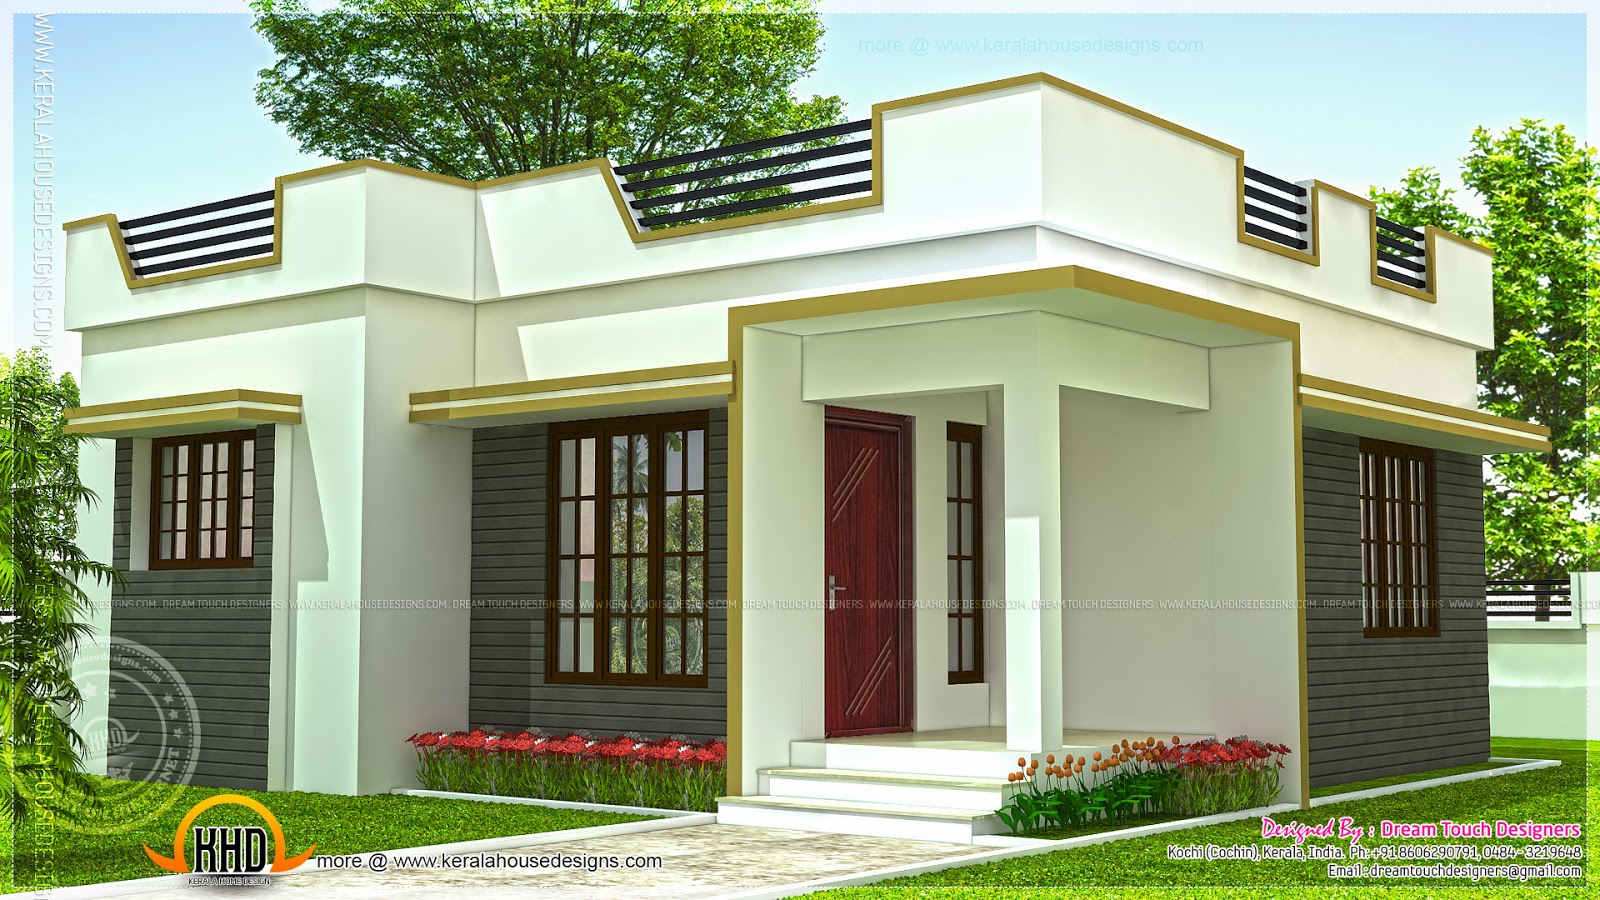 Kerala small house plans joy studio design gallery for Kerala house design plans